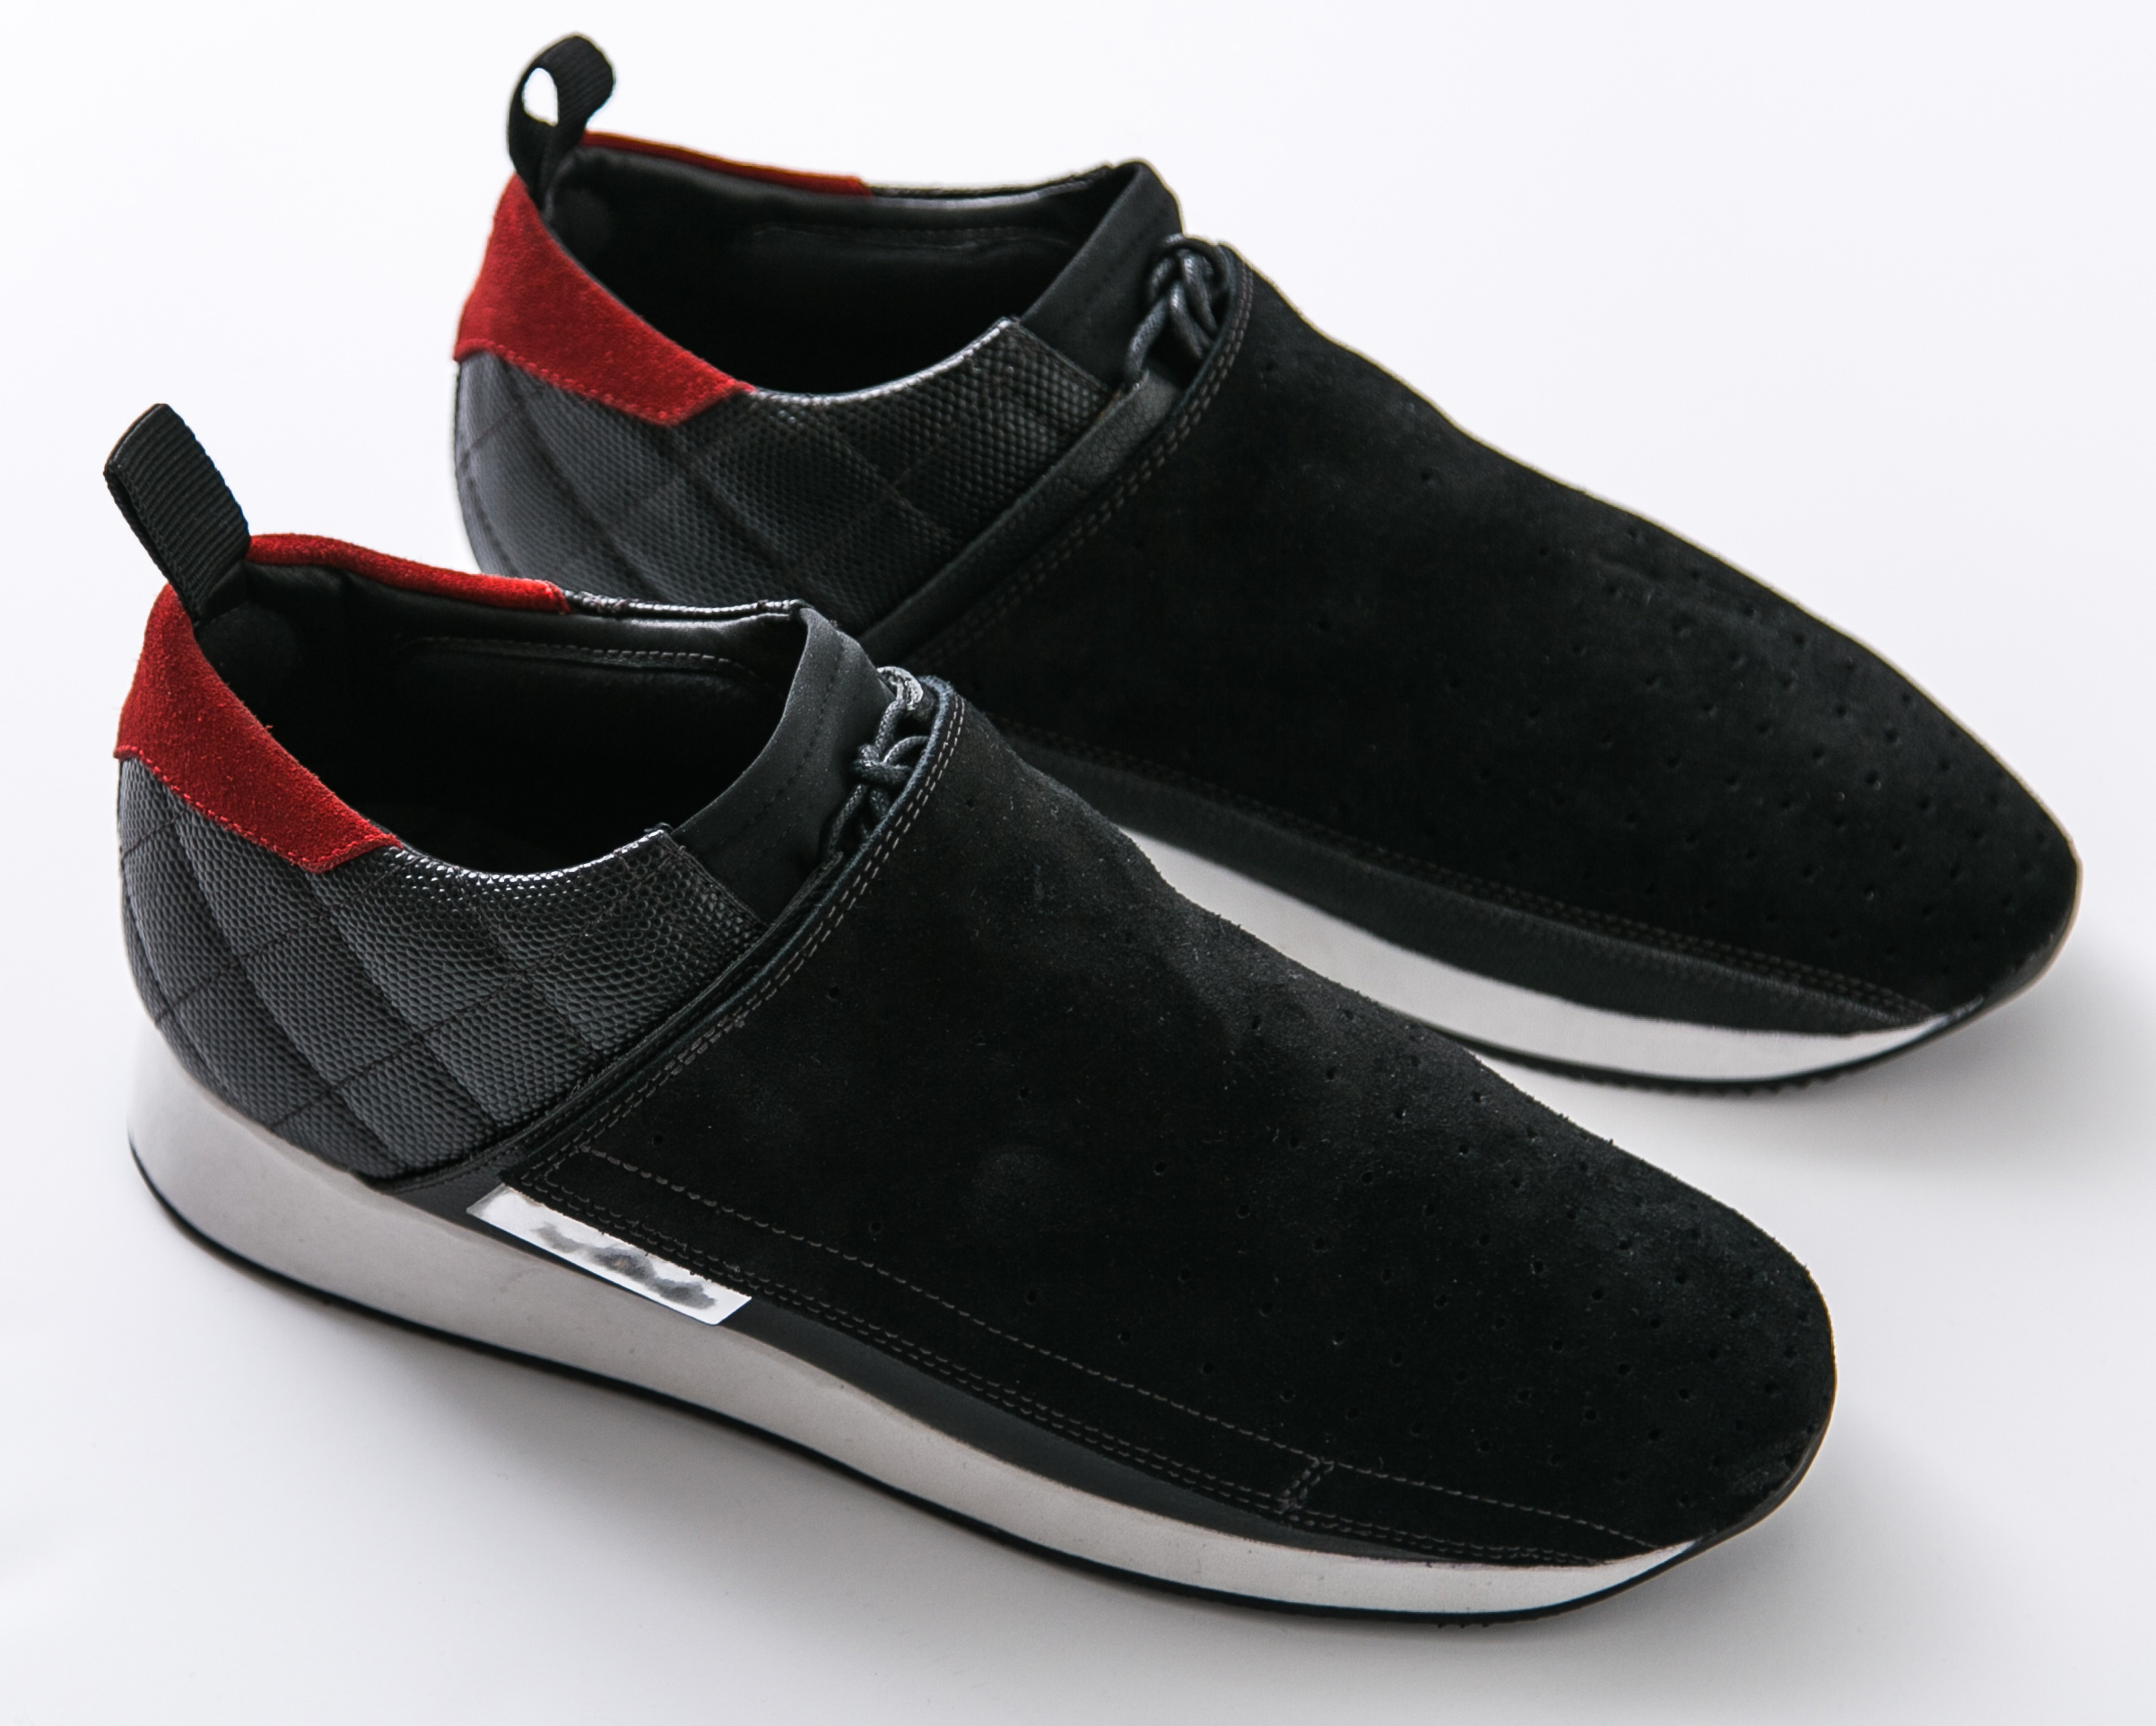 8024edee6154 Driving shoes for the Honda Civic crowd